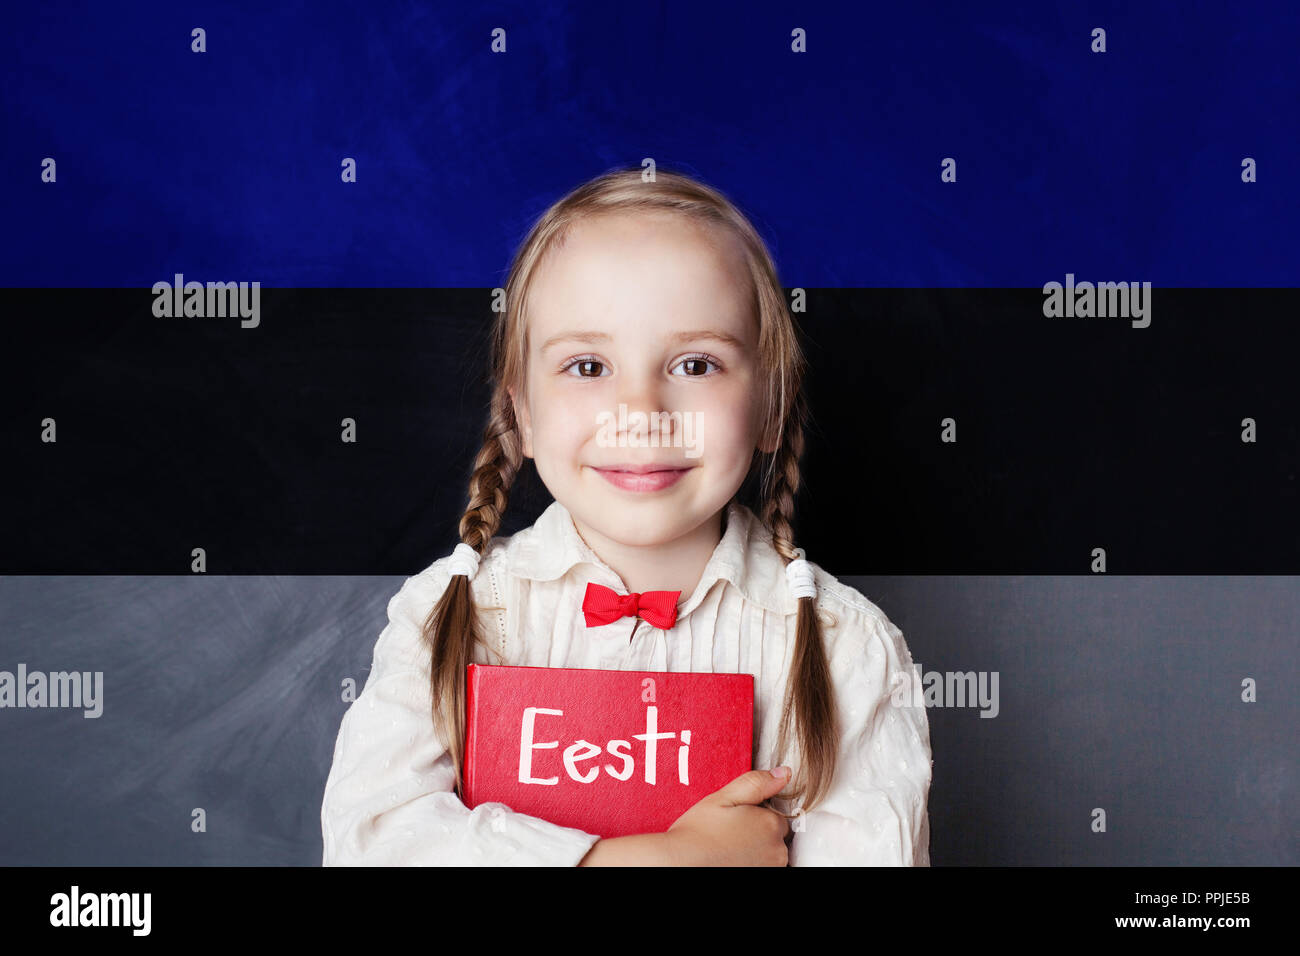 Estonian language concept with litte girl student with book against the Estonian flag background. Learn language - Stock Image